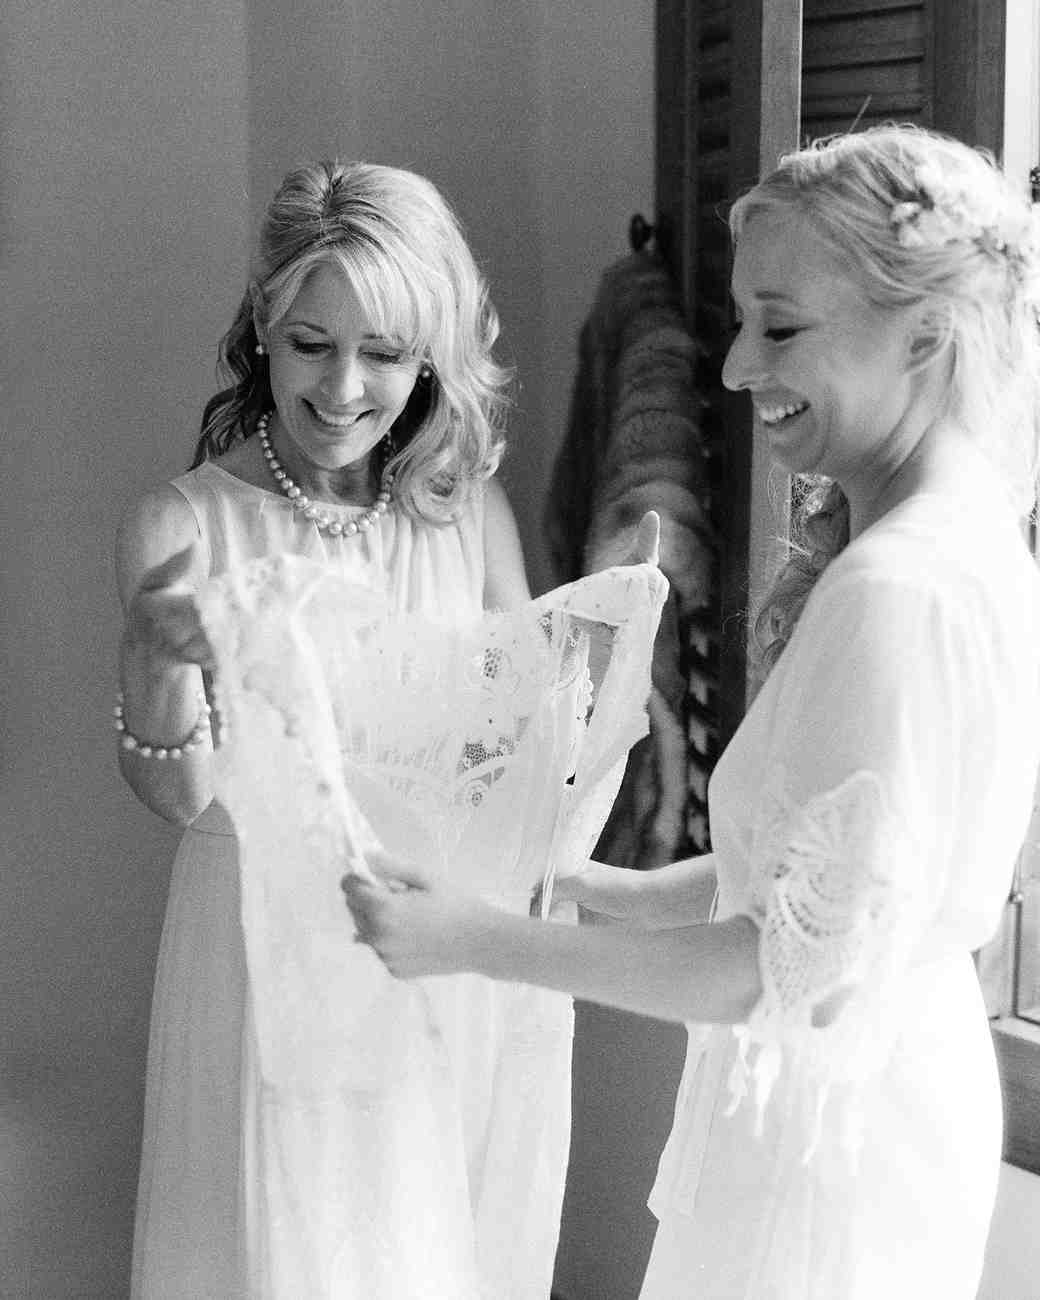 Mother and Daughter Holding a Wedding Dress